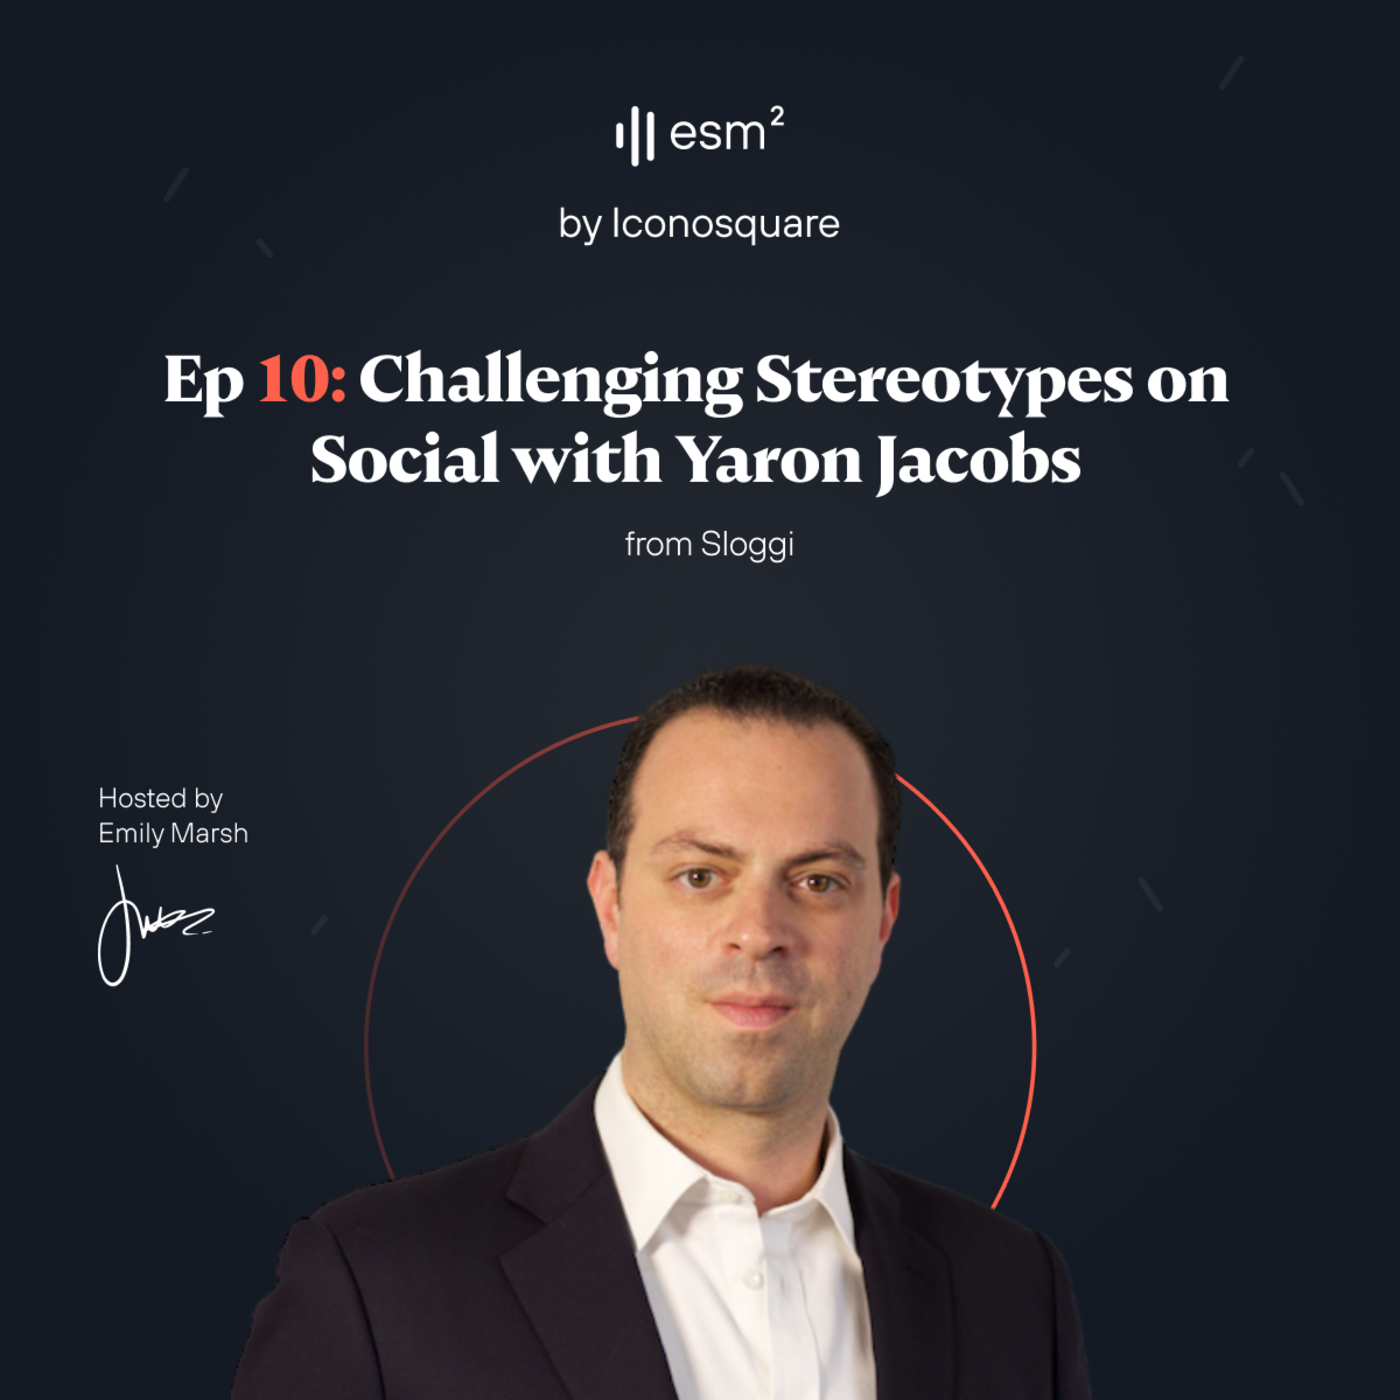 """""""Challenging Stereotypes on Social"""" - Yaron Jacobs from Sloggi"""